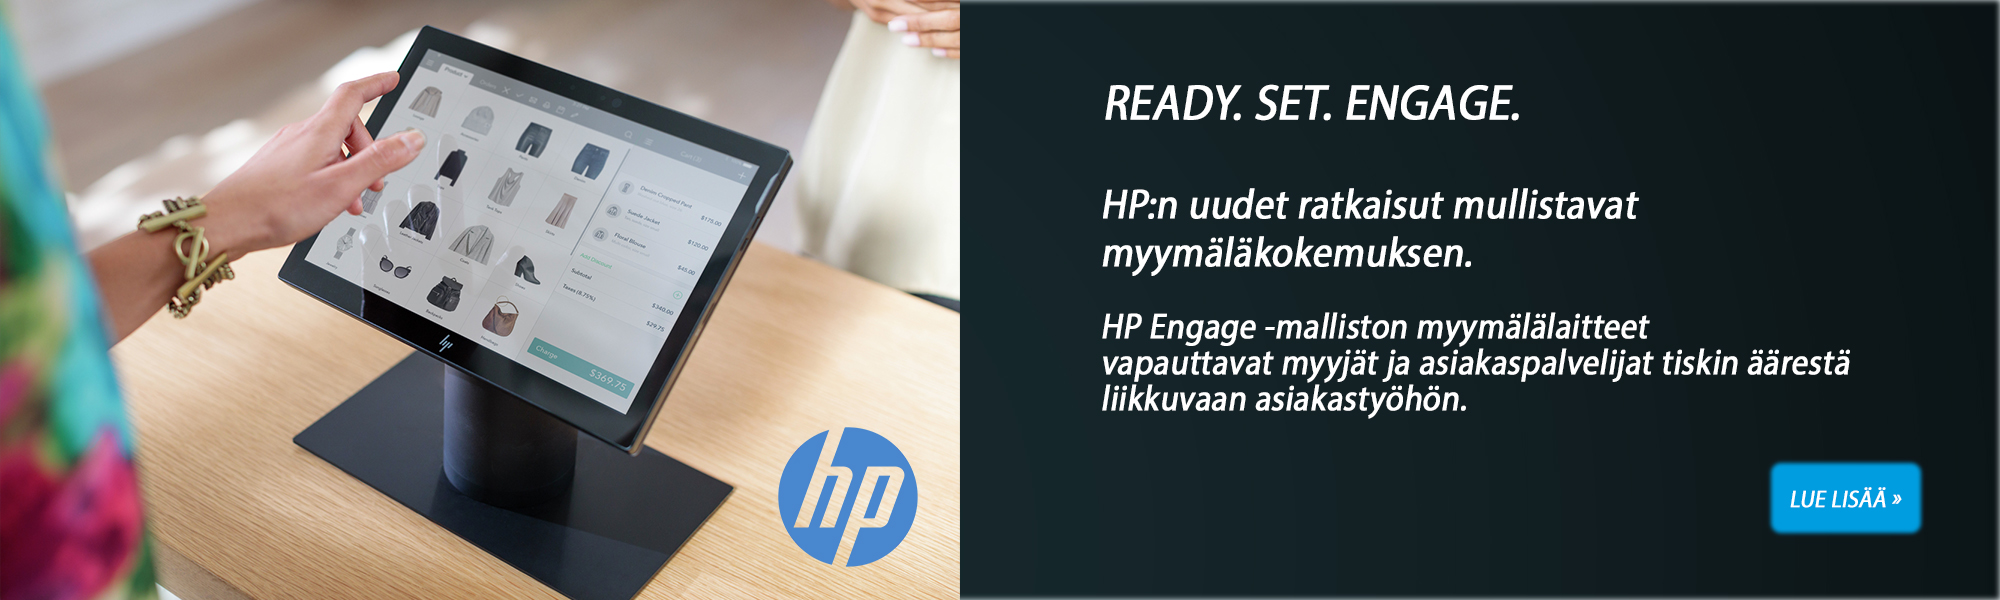 Uusi HP Engage